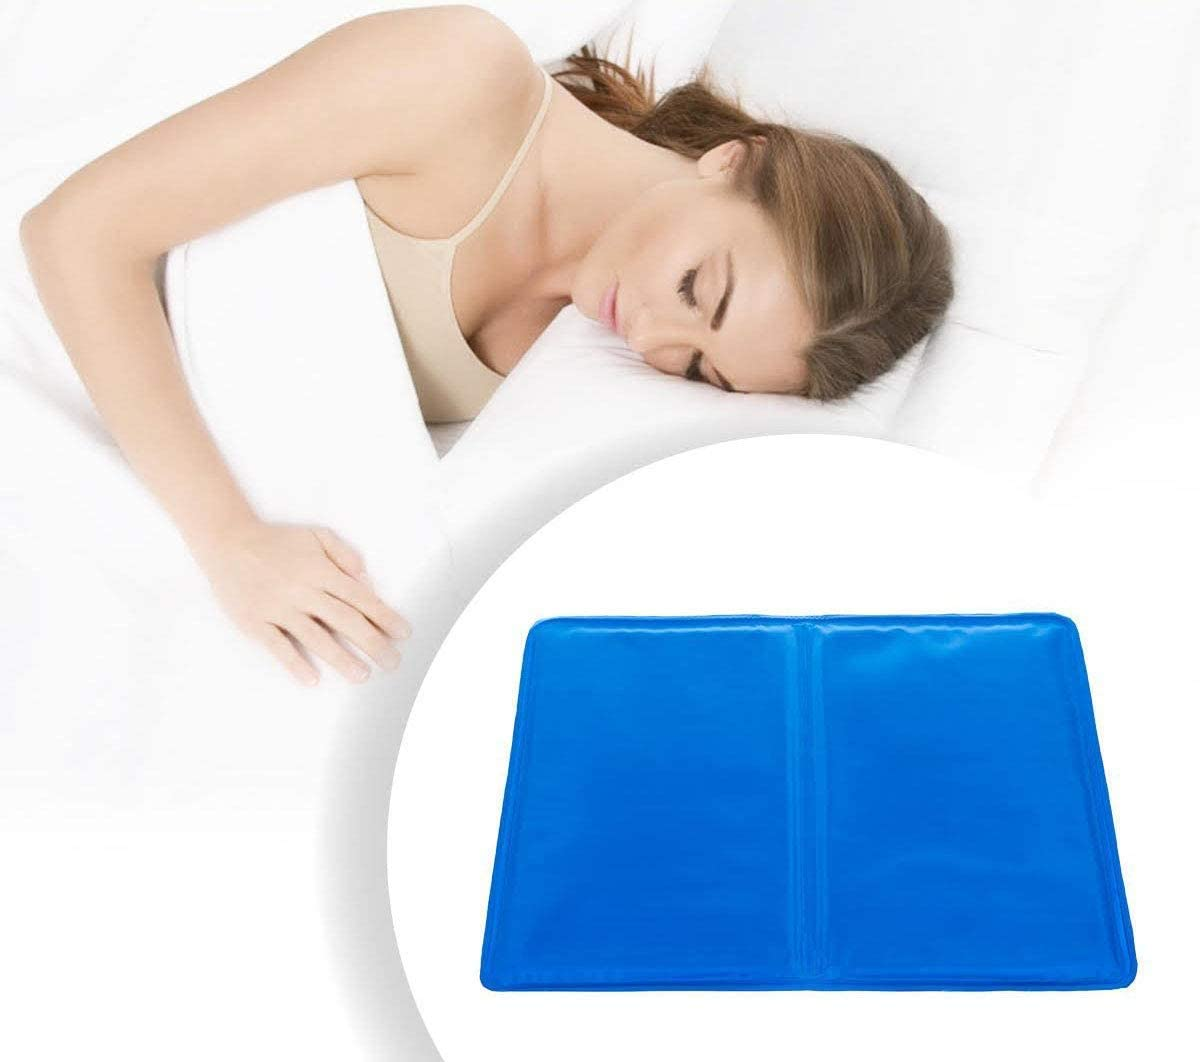 Pad Gel Cooling Pillow Sleep Cool Mat Bed Comfort Natural Chilled Body Topper UK